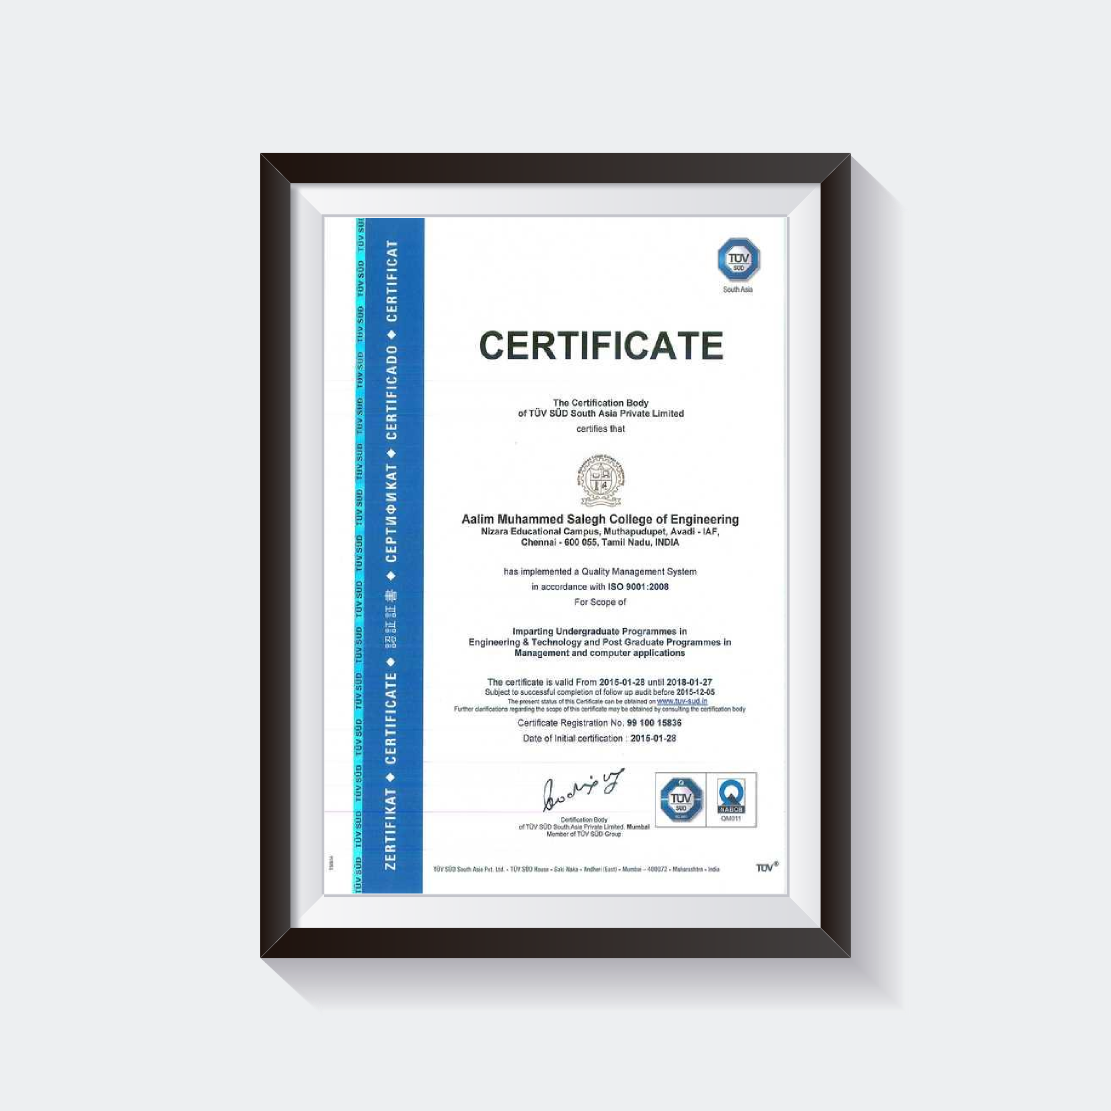 Accreditation aalim muhammed salegh college of engineering iso 90002008 certification 1betcityfo Gallery